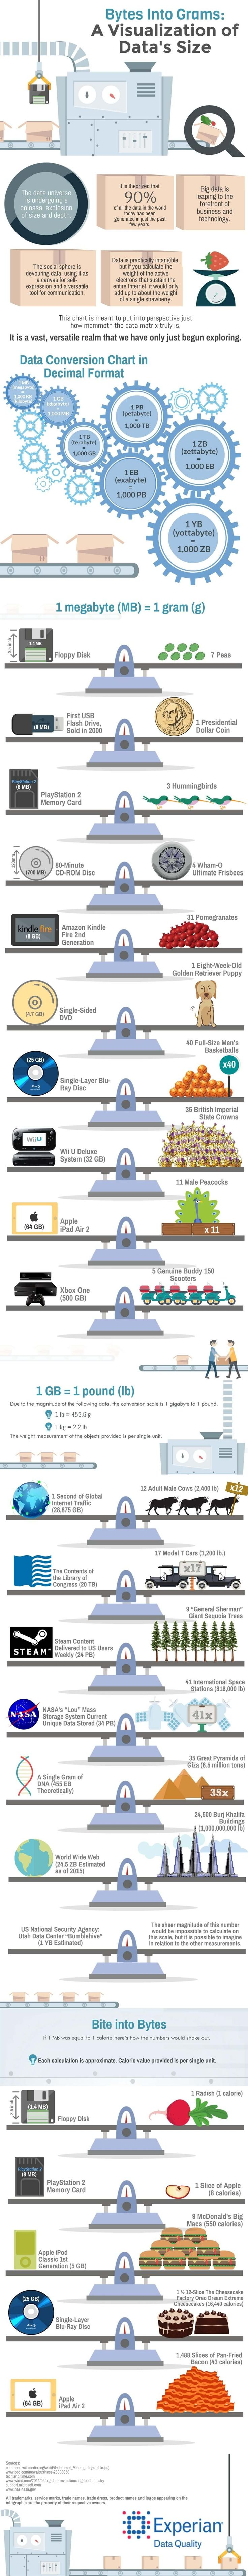 ShareDiscover new TIPS! Discover new TIPS! Published by: Experian Original source: here TIPS FOR: technology, coding, programming, computer science, computing, informatics, big data, humor, funny, geek, data devices, data size, data size chart, data size units, megabyte, kilobyte, gigabyte, terabyte, petabyte, exabyte, zettabyte, yottabyte, bytes into grams, bytes into pounds, bytes into calories, data size Read More »